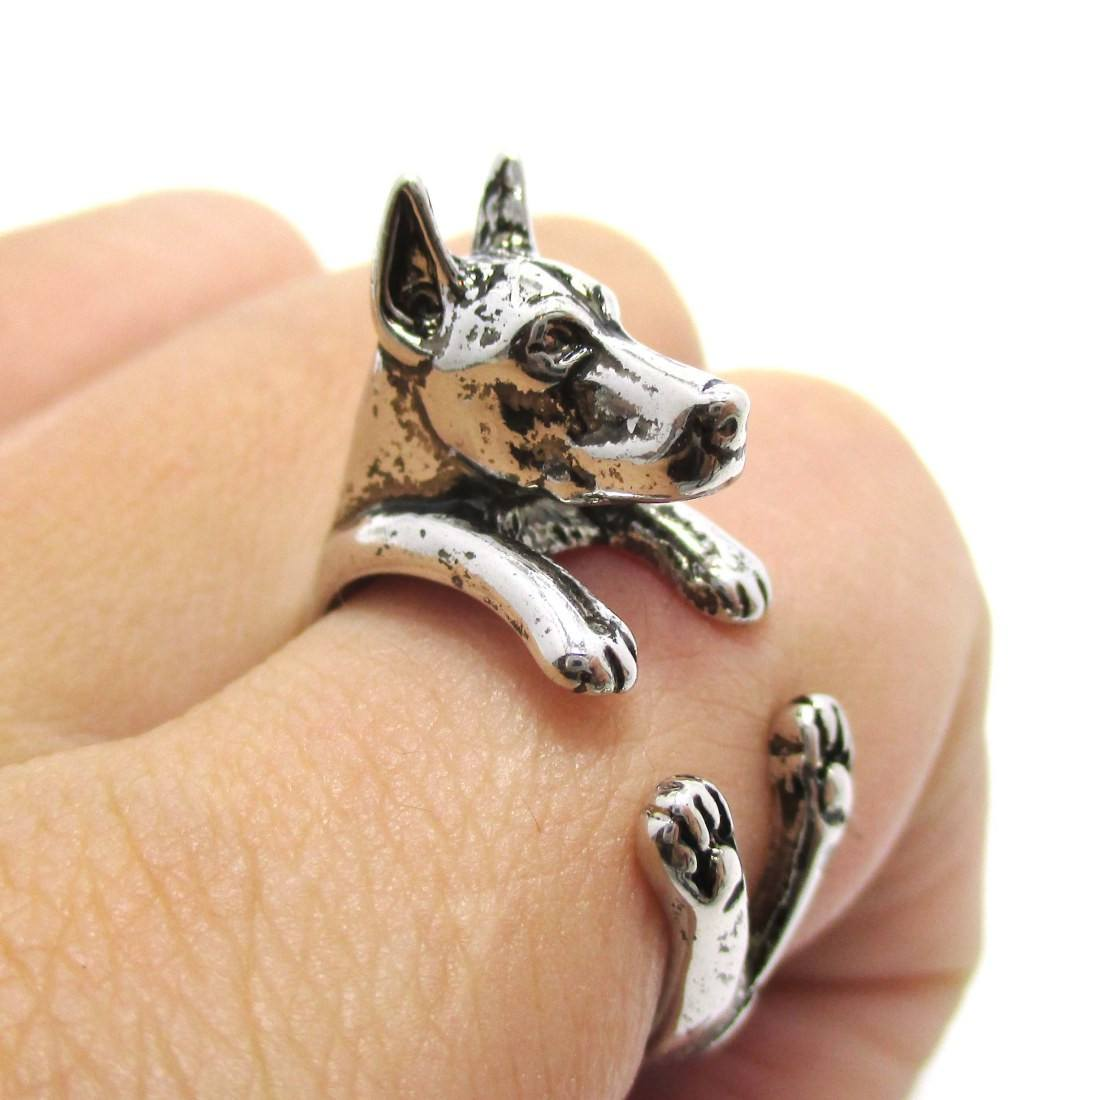 3D Doberman Dog Shaped Animal Wrap Ring in Shiny Silver